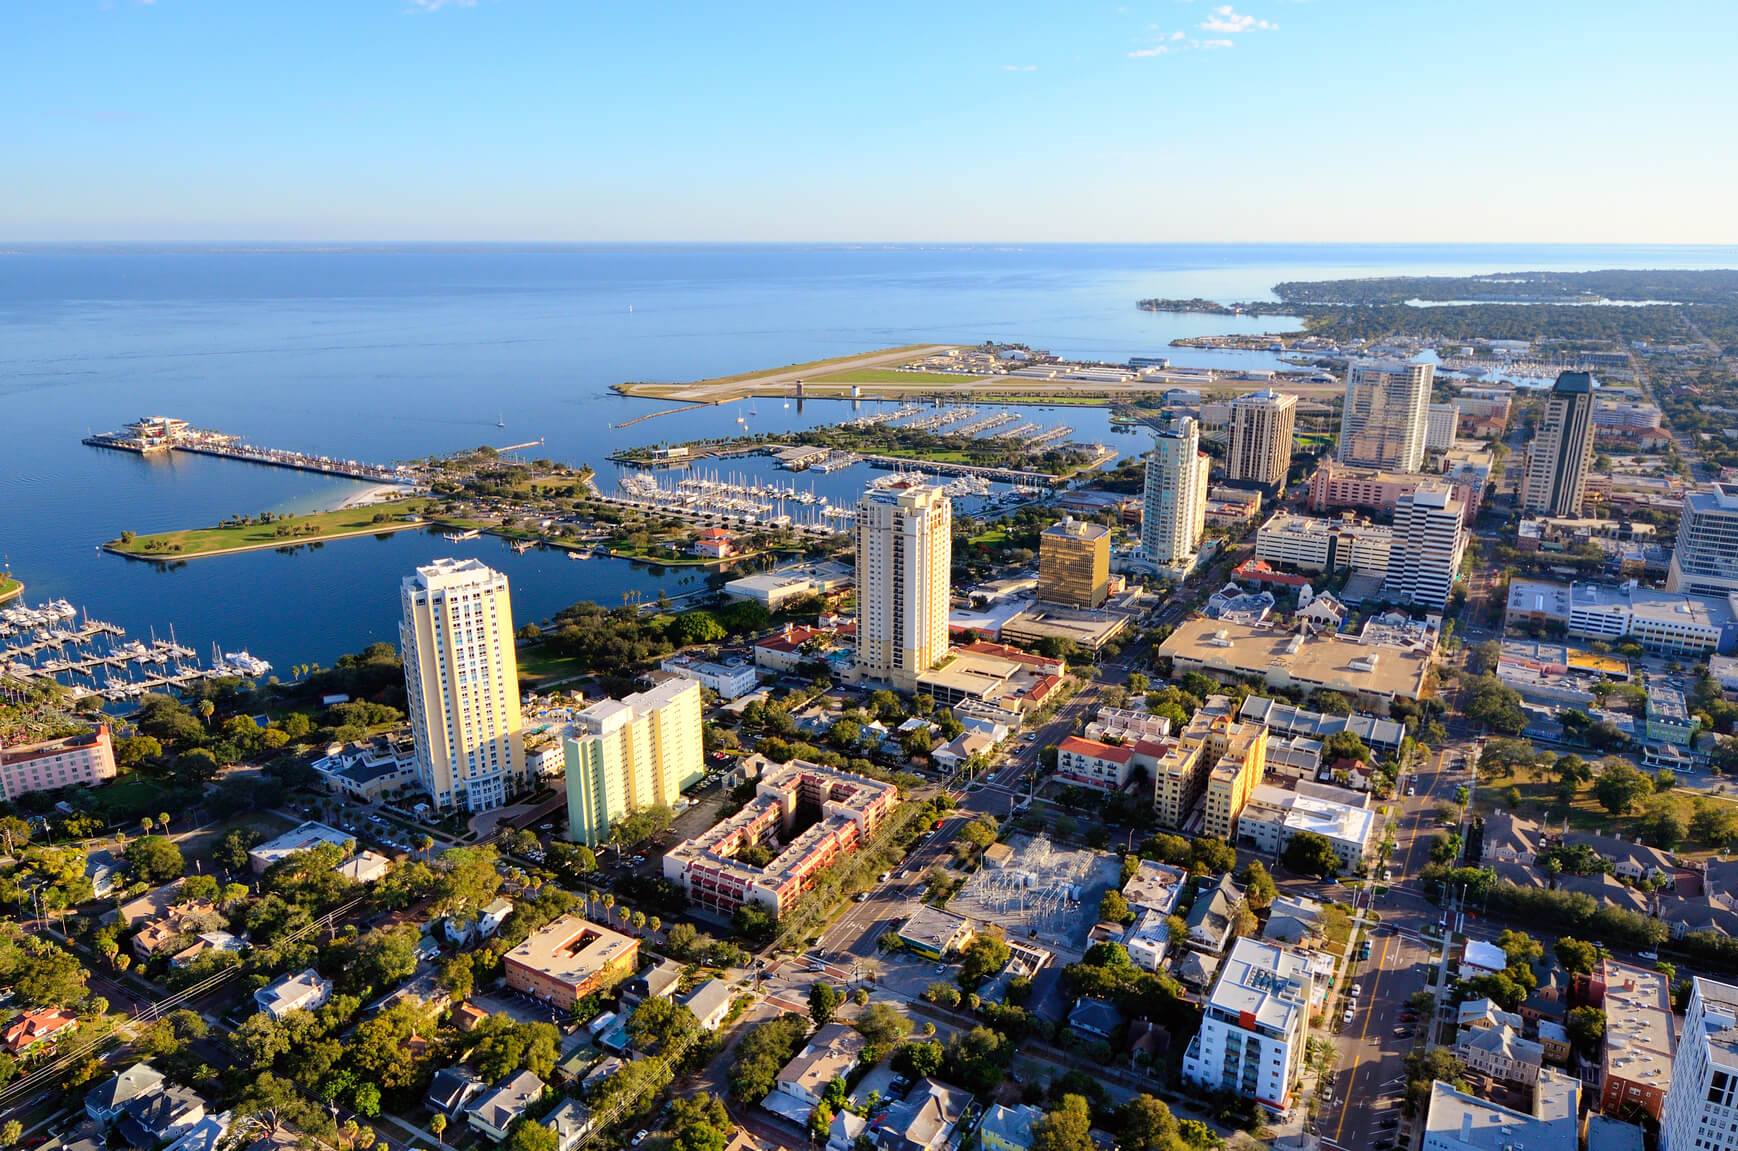 Oslo, Norway to Tampa, Florida for only €189 roundtrip